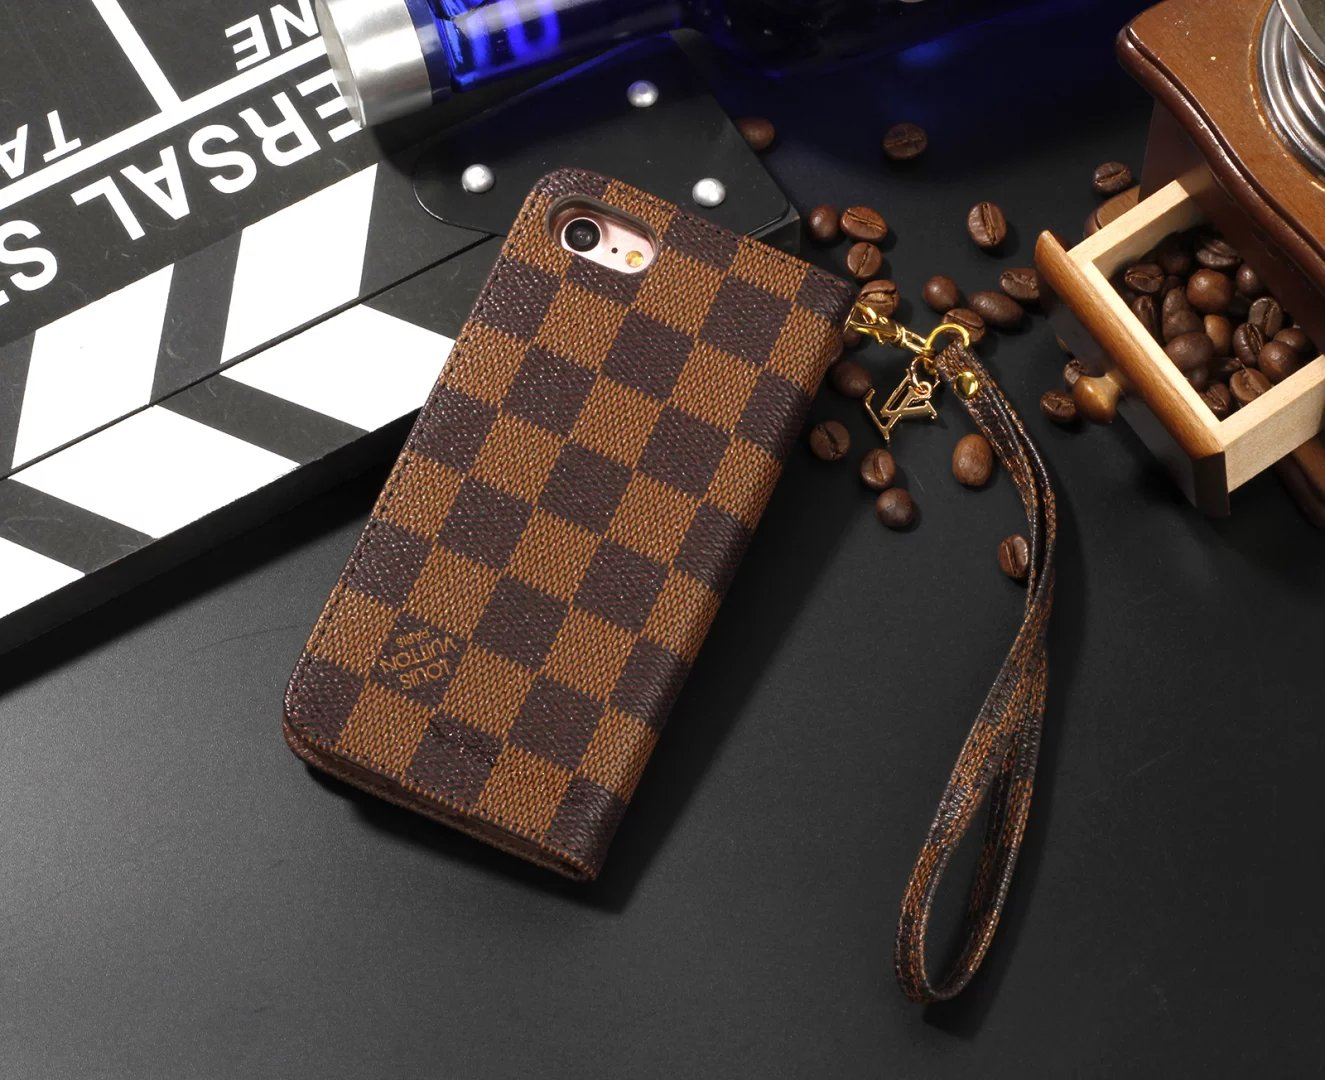 top iphone 8 covers design a iphone 8 case Louis Vuitton iphone 8 case best covers for iphone 8 designer covers for iphone 8 best designer iphone 8 cases mobile phone case covers iphone 8 battery case mophie personalized phone covers